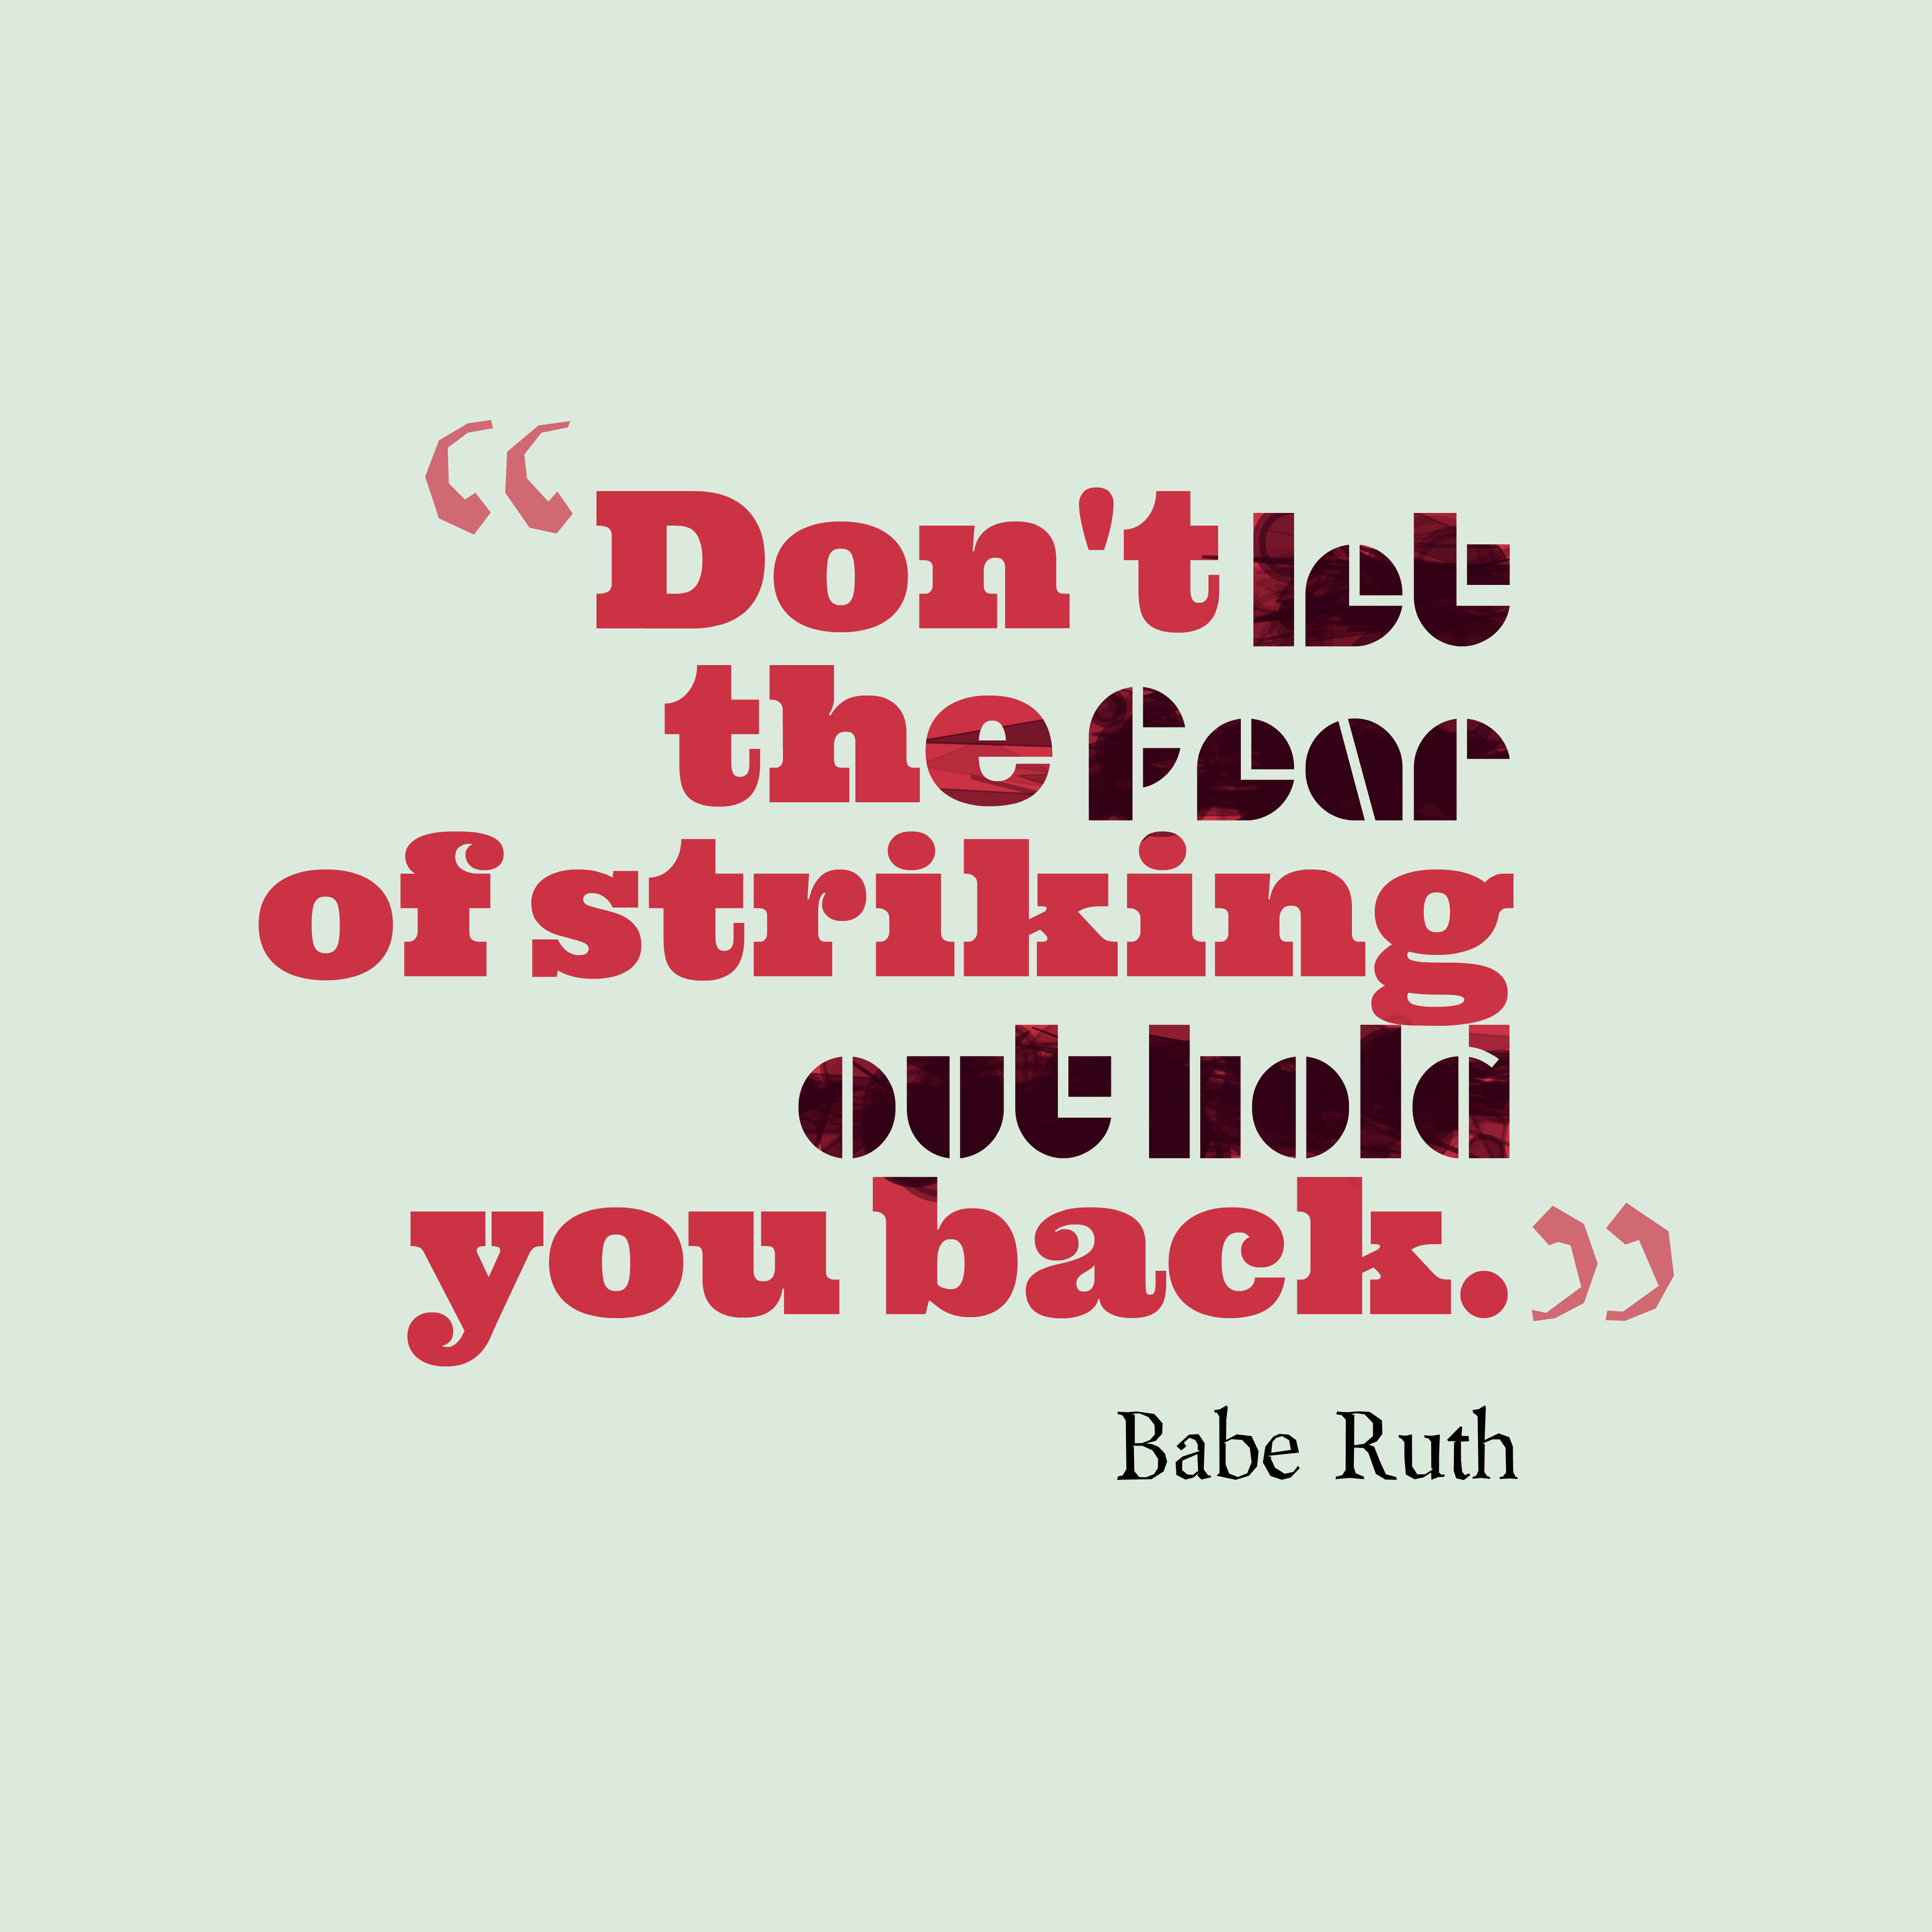 Quotes image of Don't let the fear of striking out hold you back.